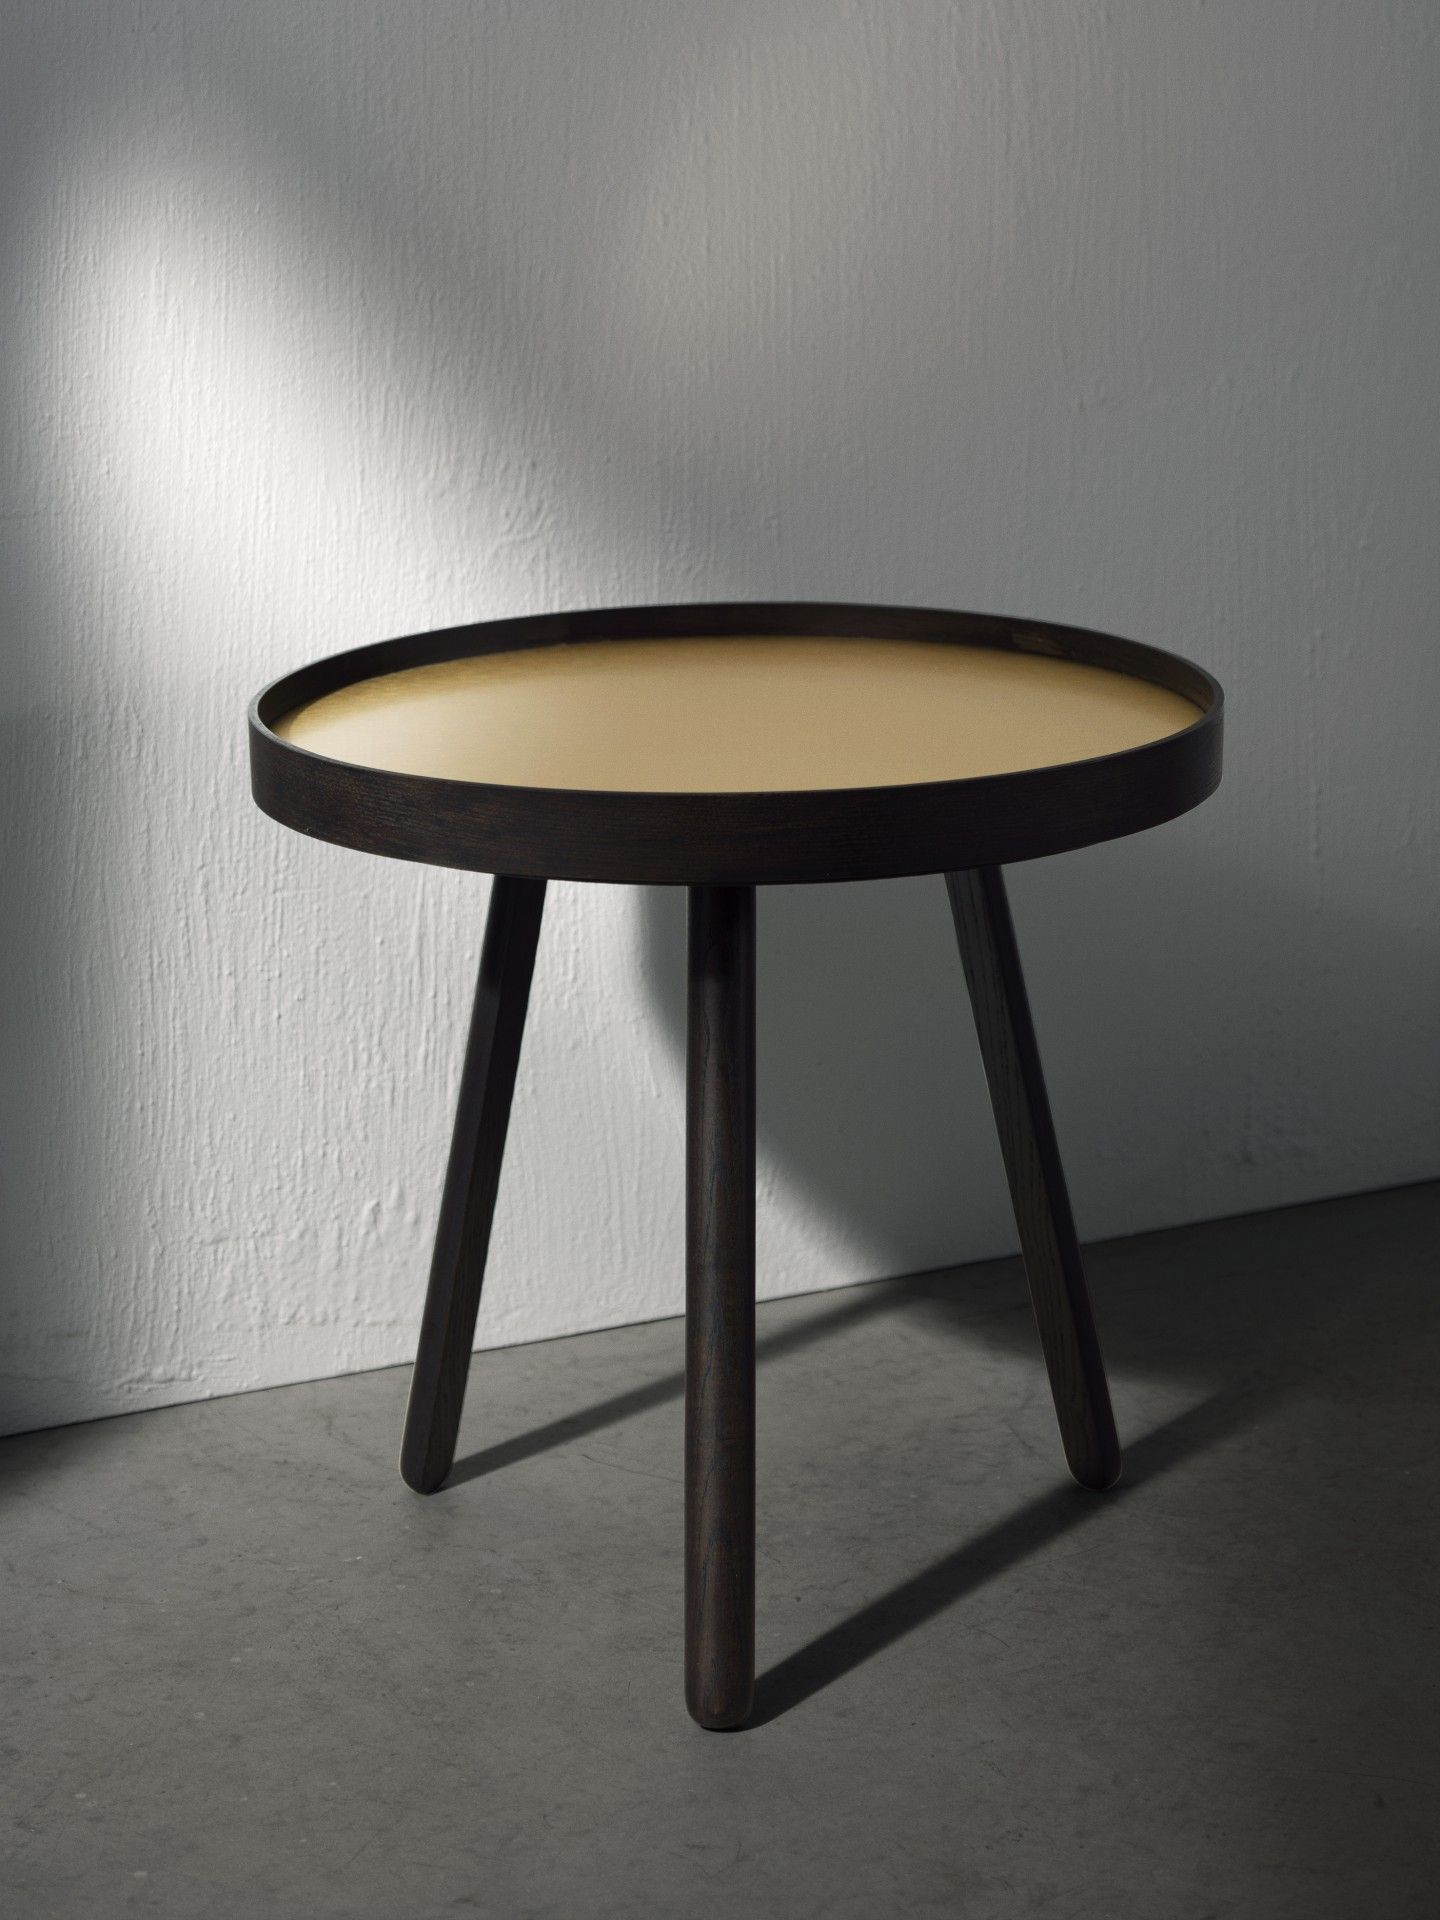 Beautiful in its simplicity Uncover is a small side table with a